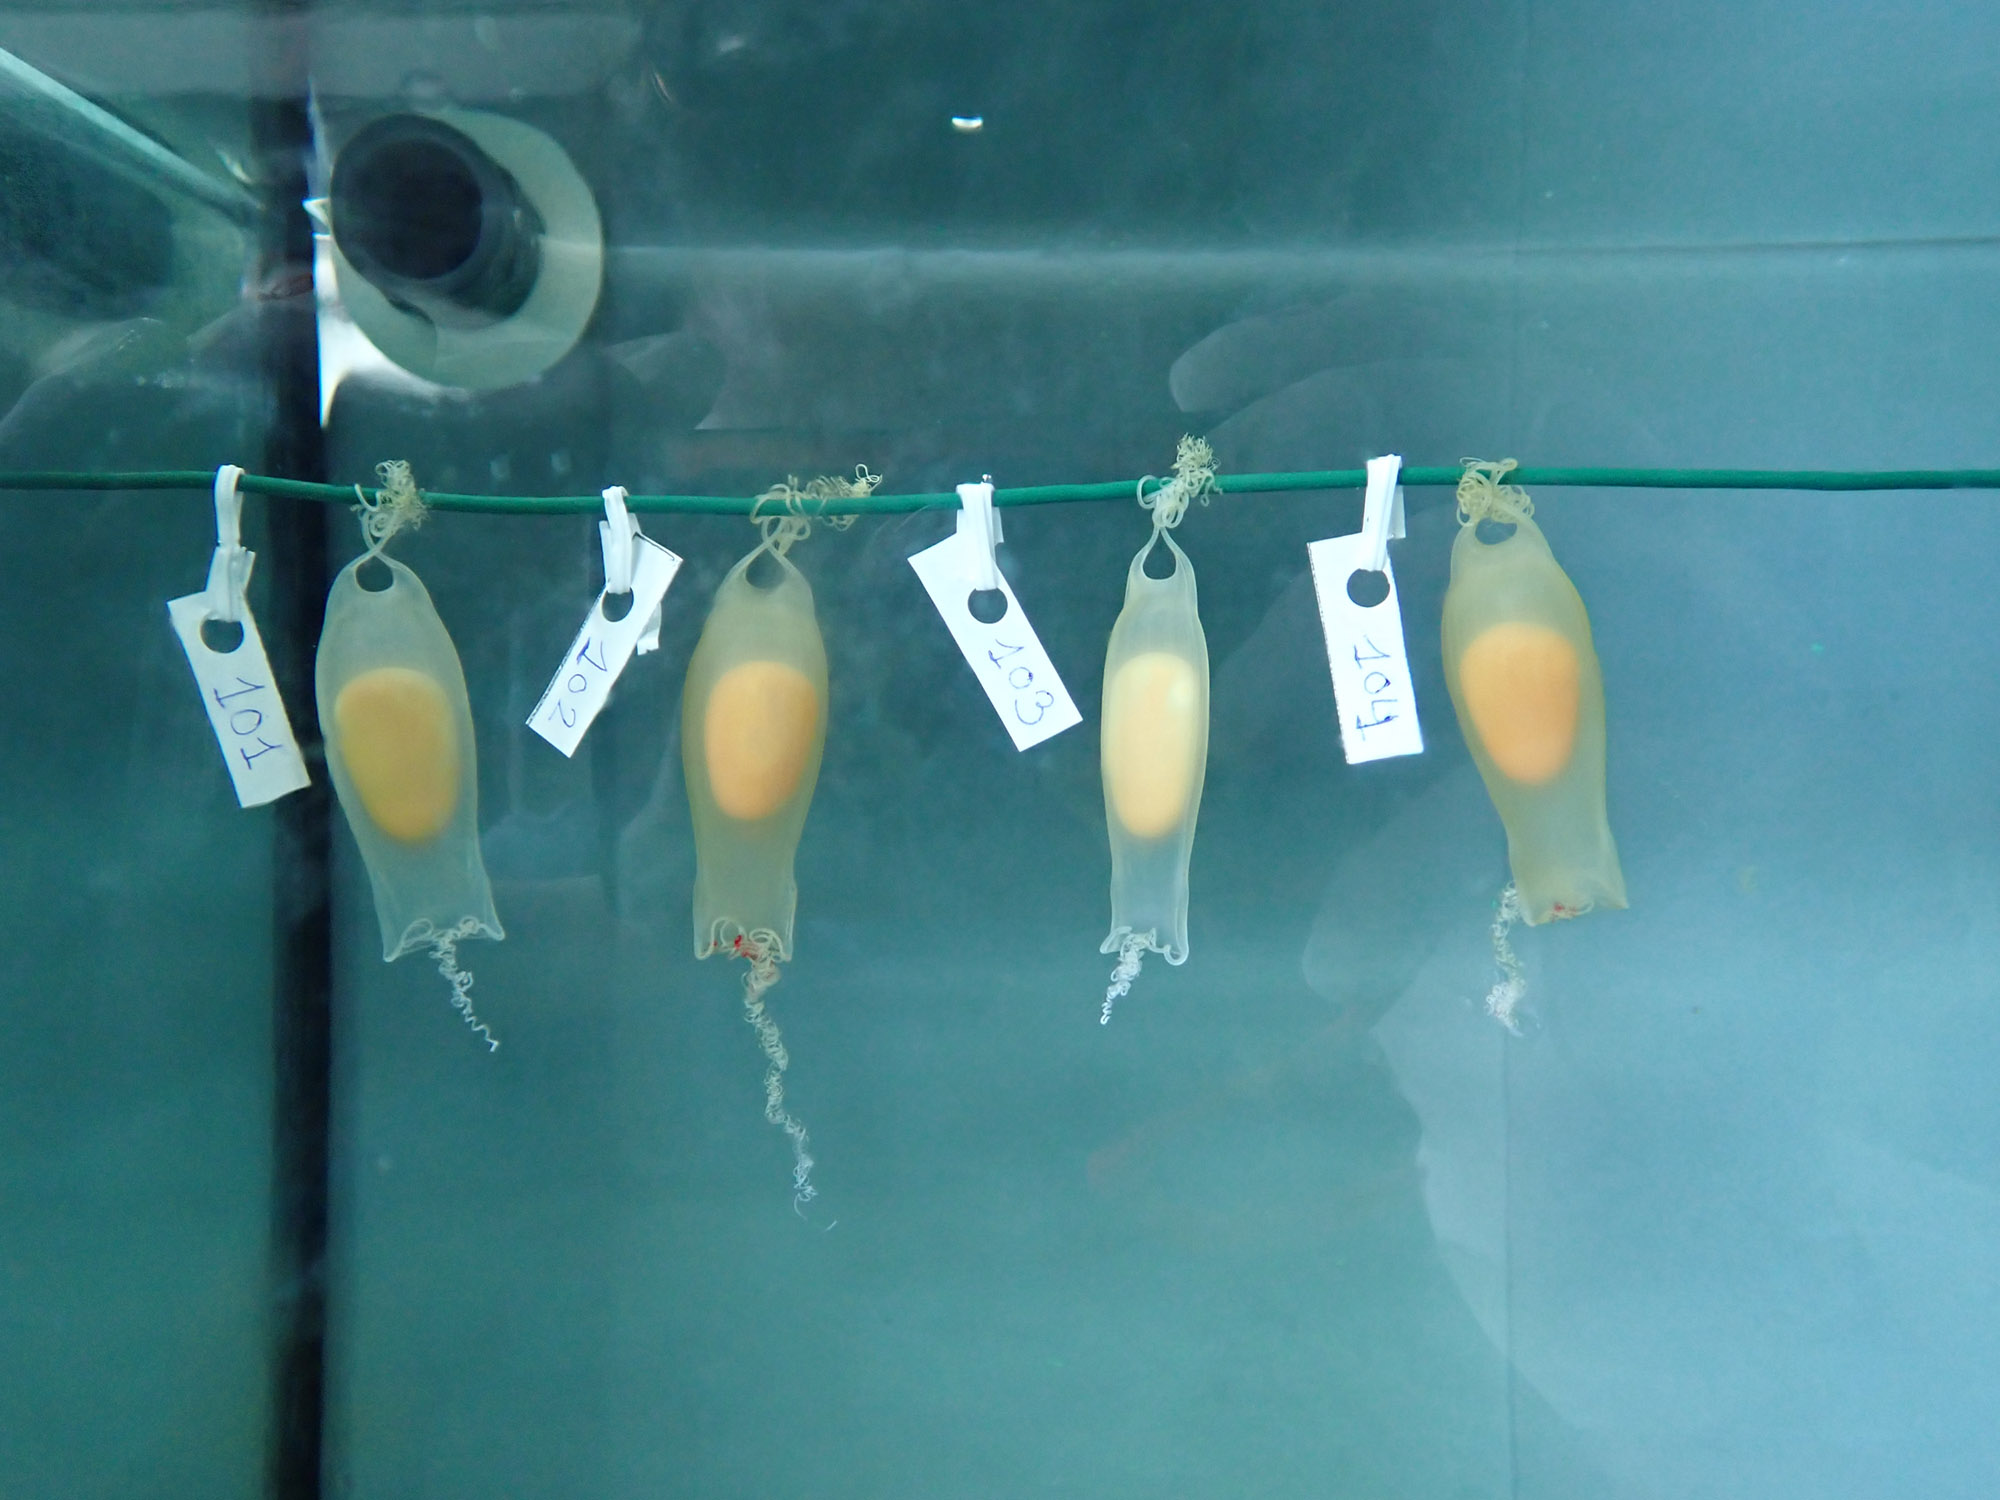 VIDEO: Little Nippers: Baby Sharks Born After Live Eggs Were Spotted In A Fish Market